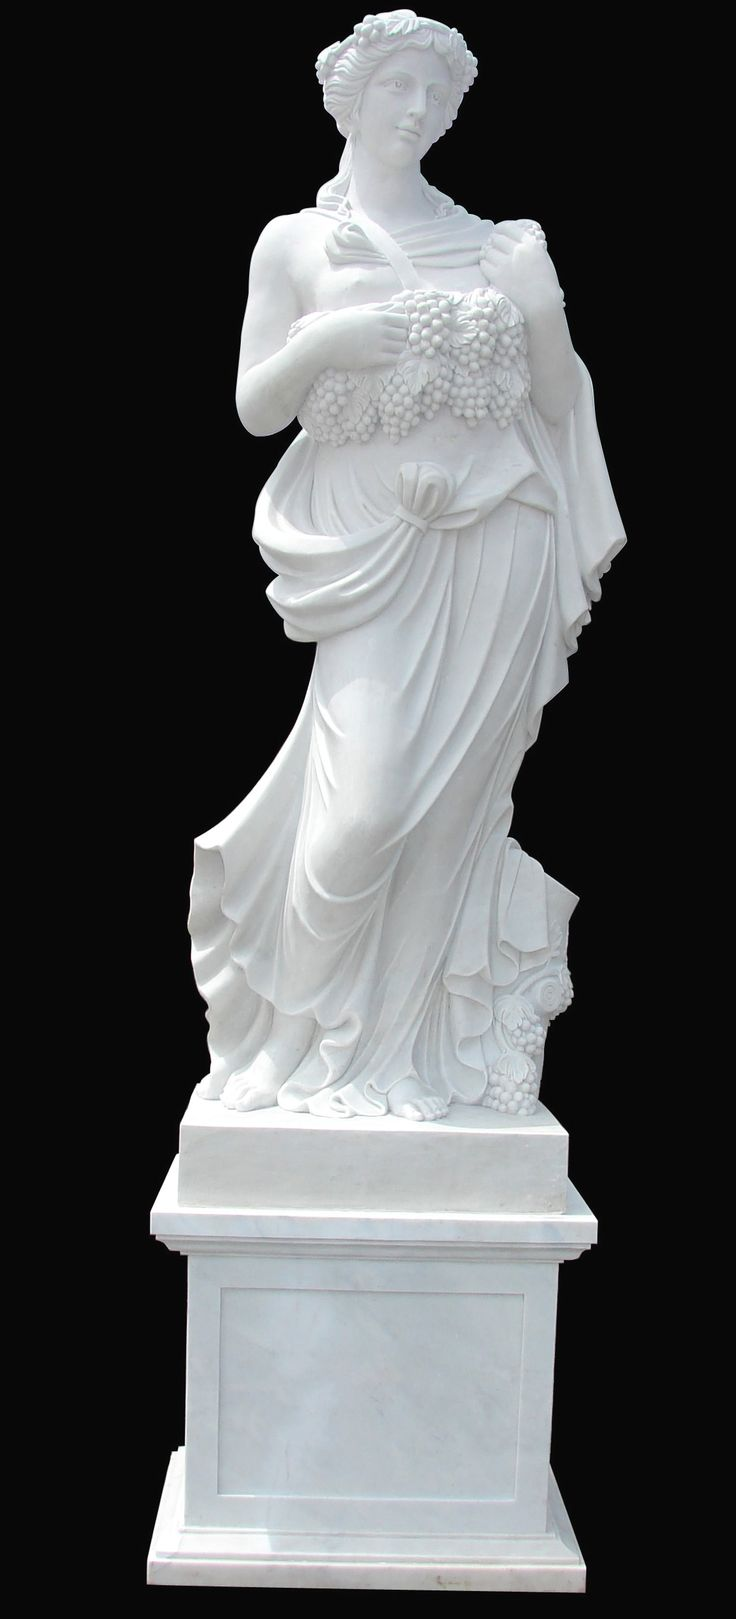 White Marble Statue : Marble statues white statue of a woman holding